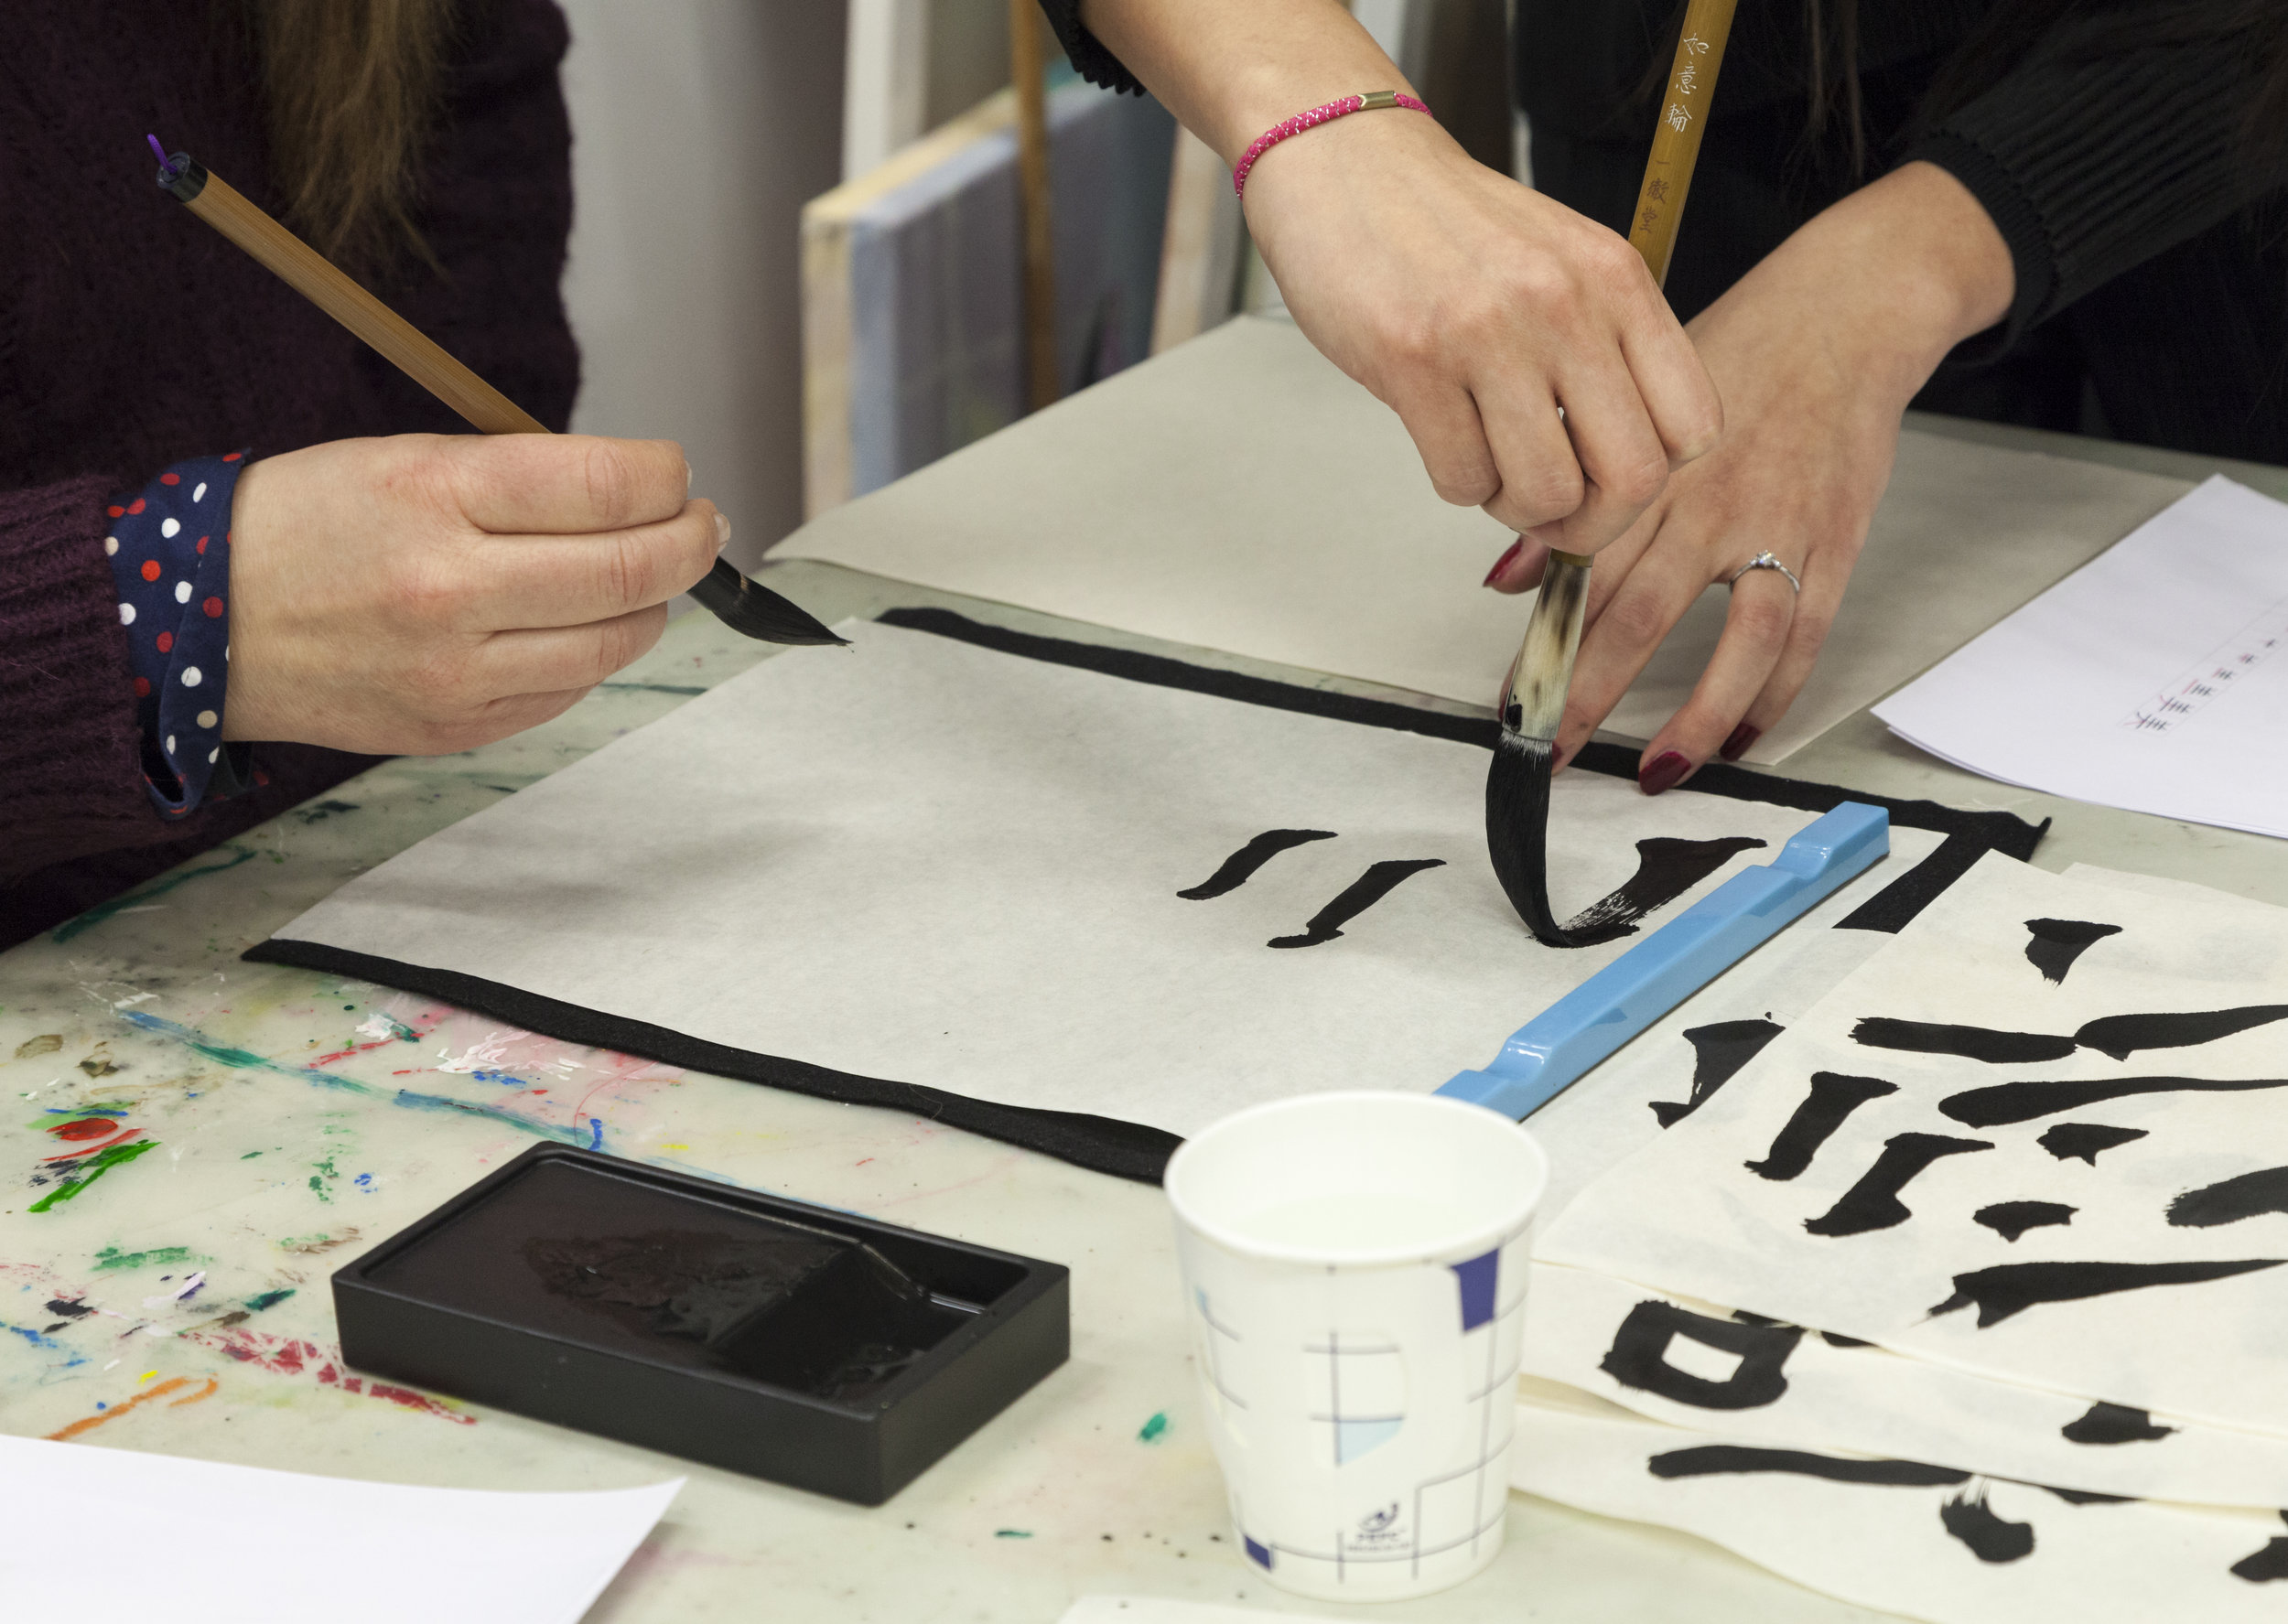 calligraphy_onomatope (29 of 55).jpg